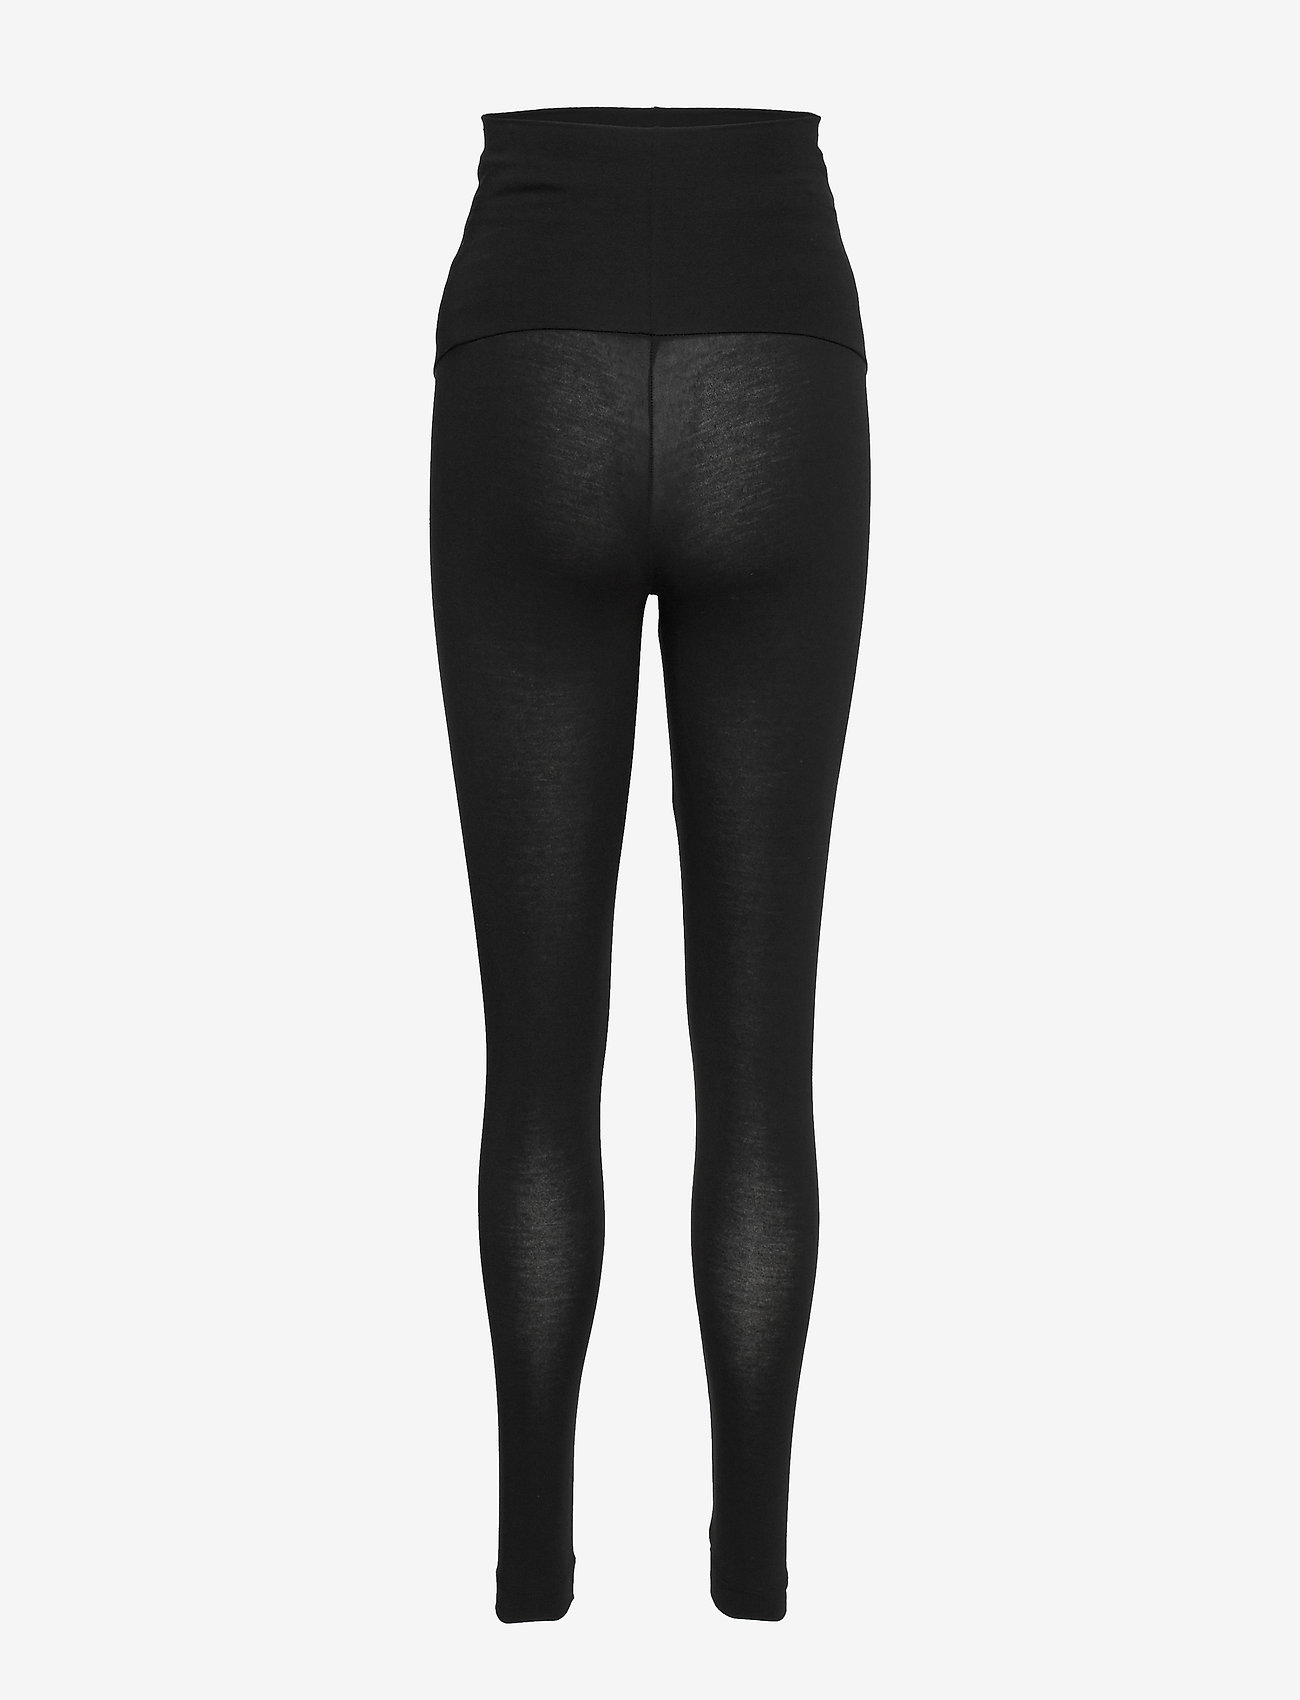 Boob - Once-on-never-off leggings - leggings - black - 1